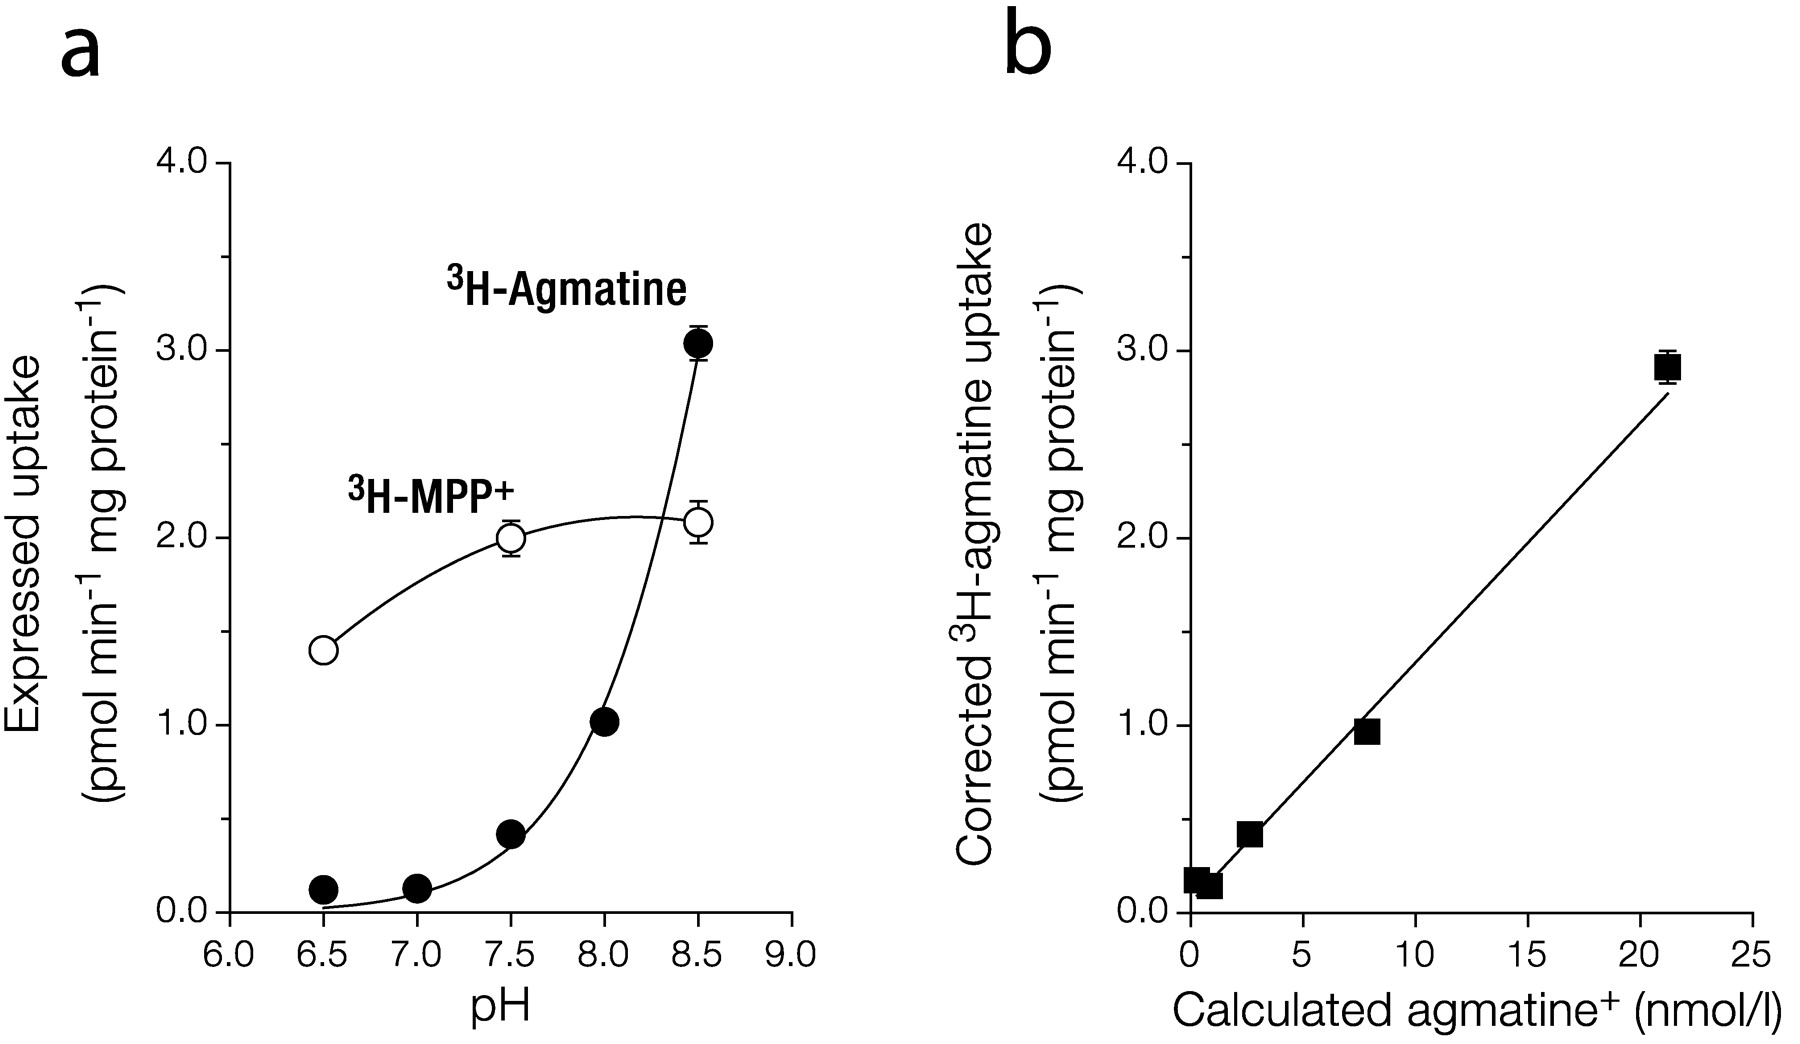 Agmatine Is Efficiently Transported by Non-Neuronal Monoamine